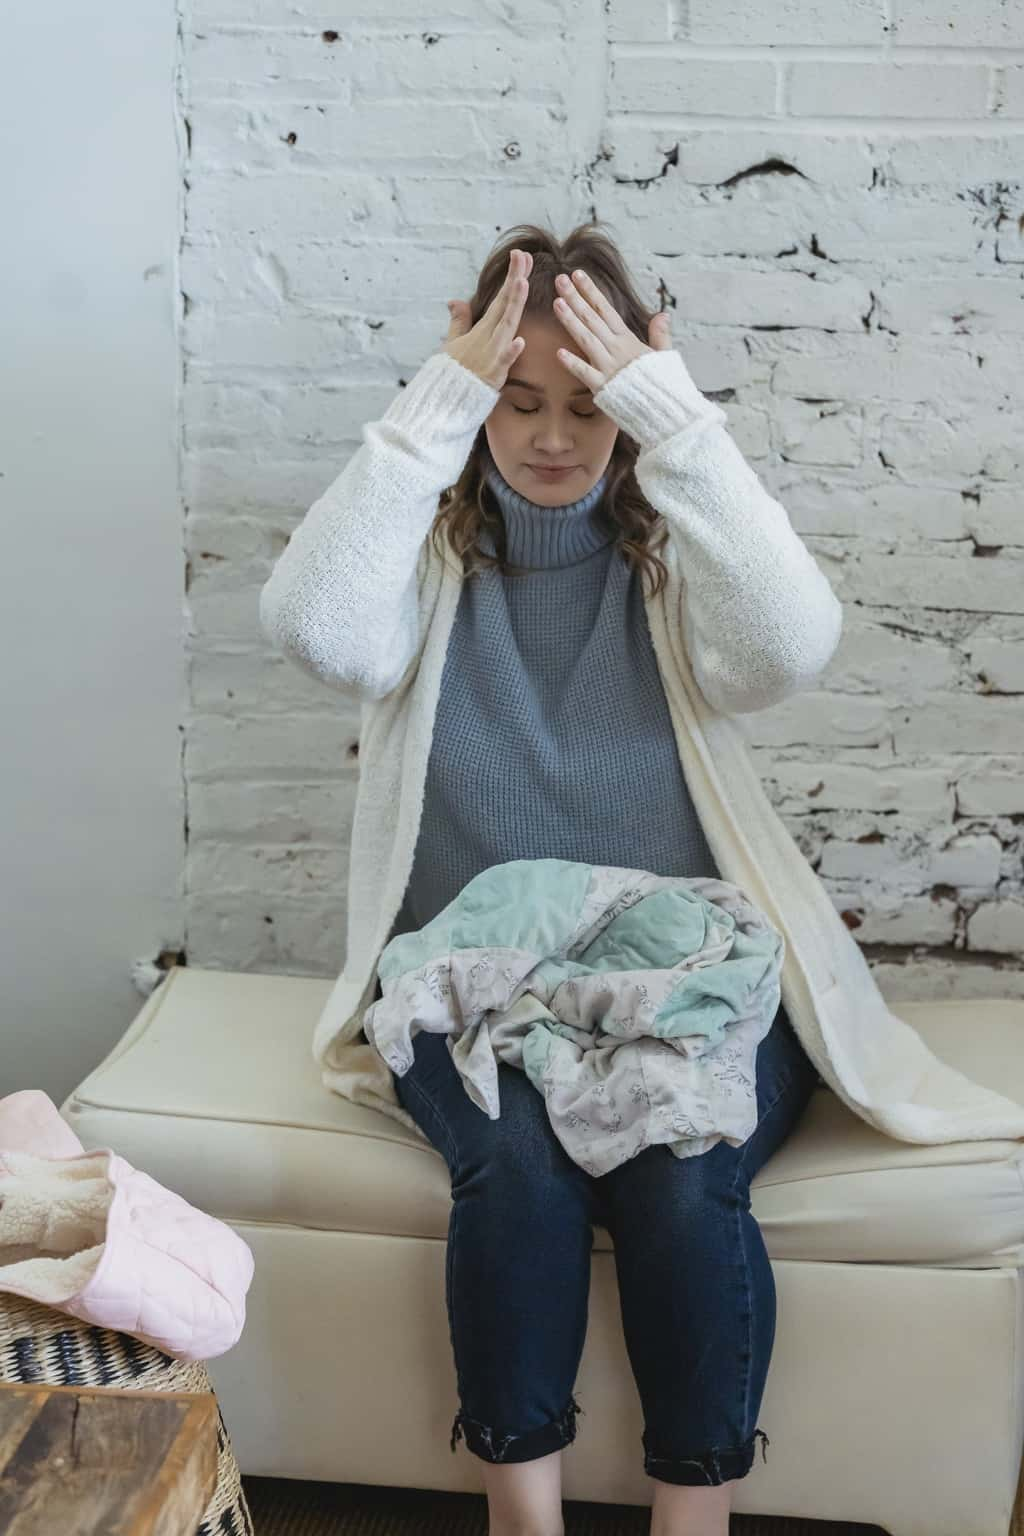 Exhausted female with closed eyes sitting on pouf near brick wall and suffering from headache